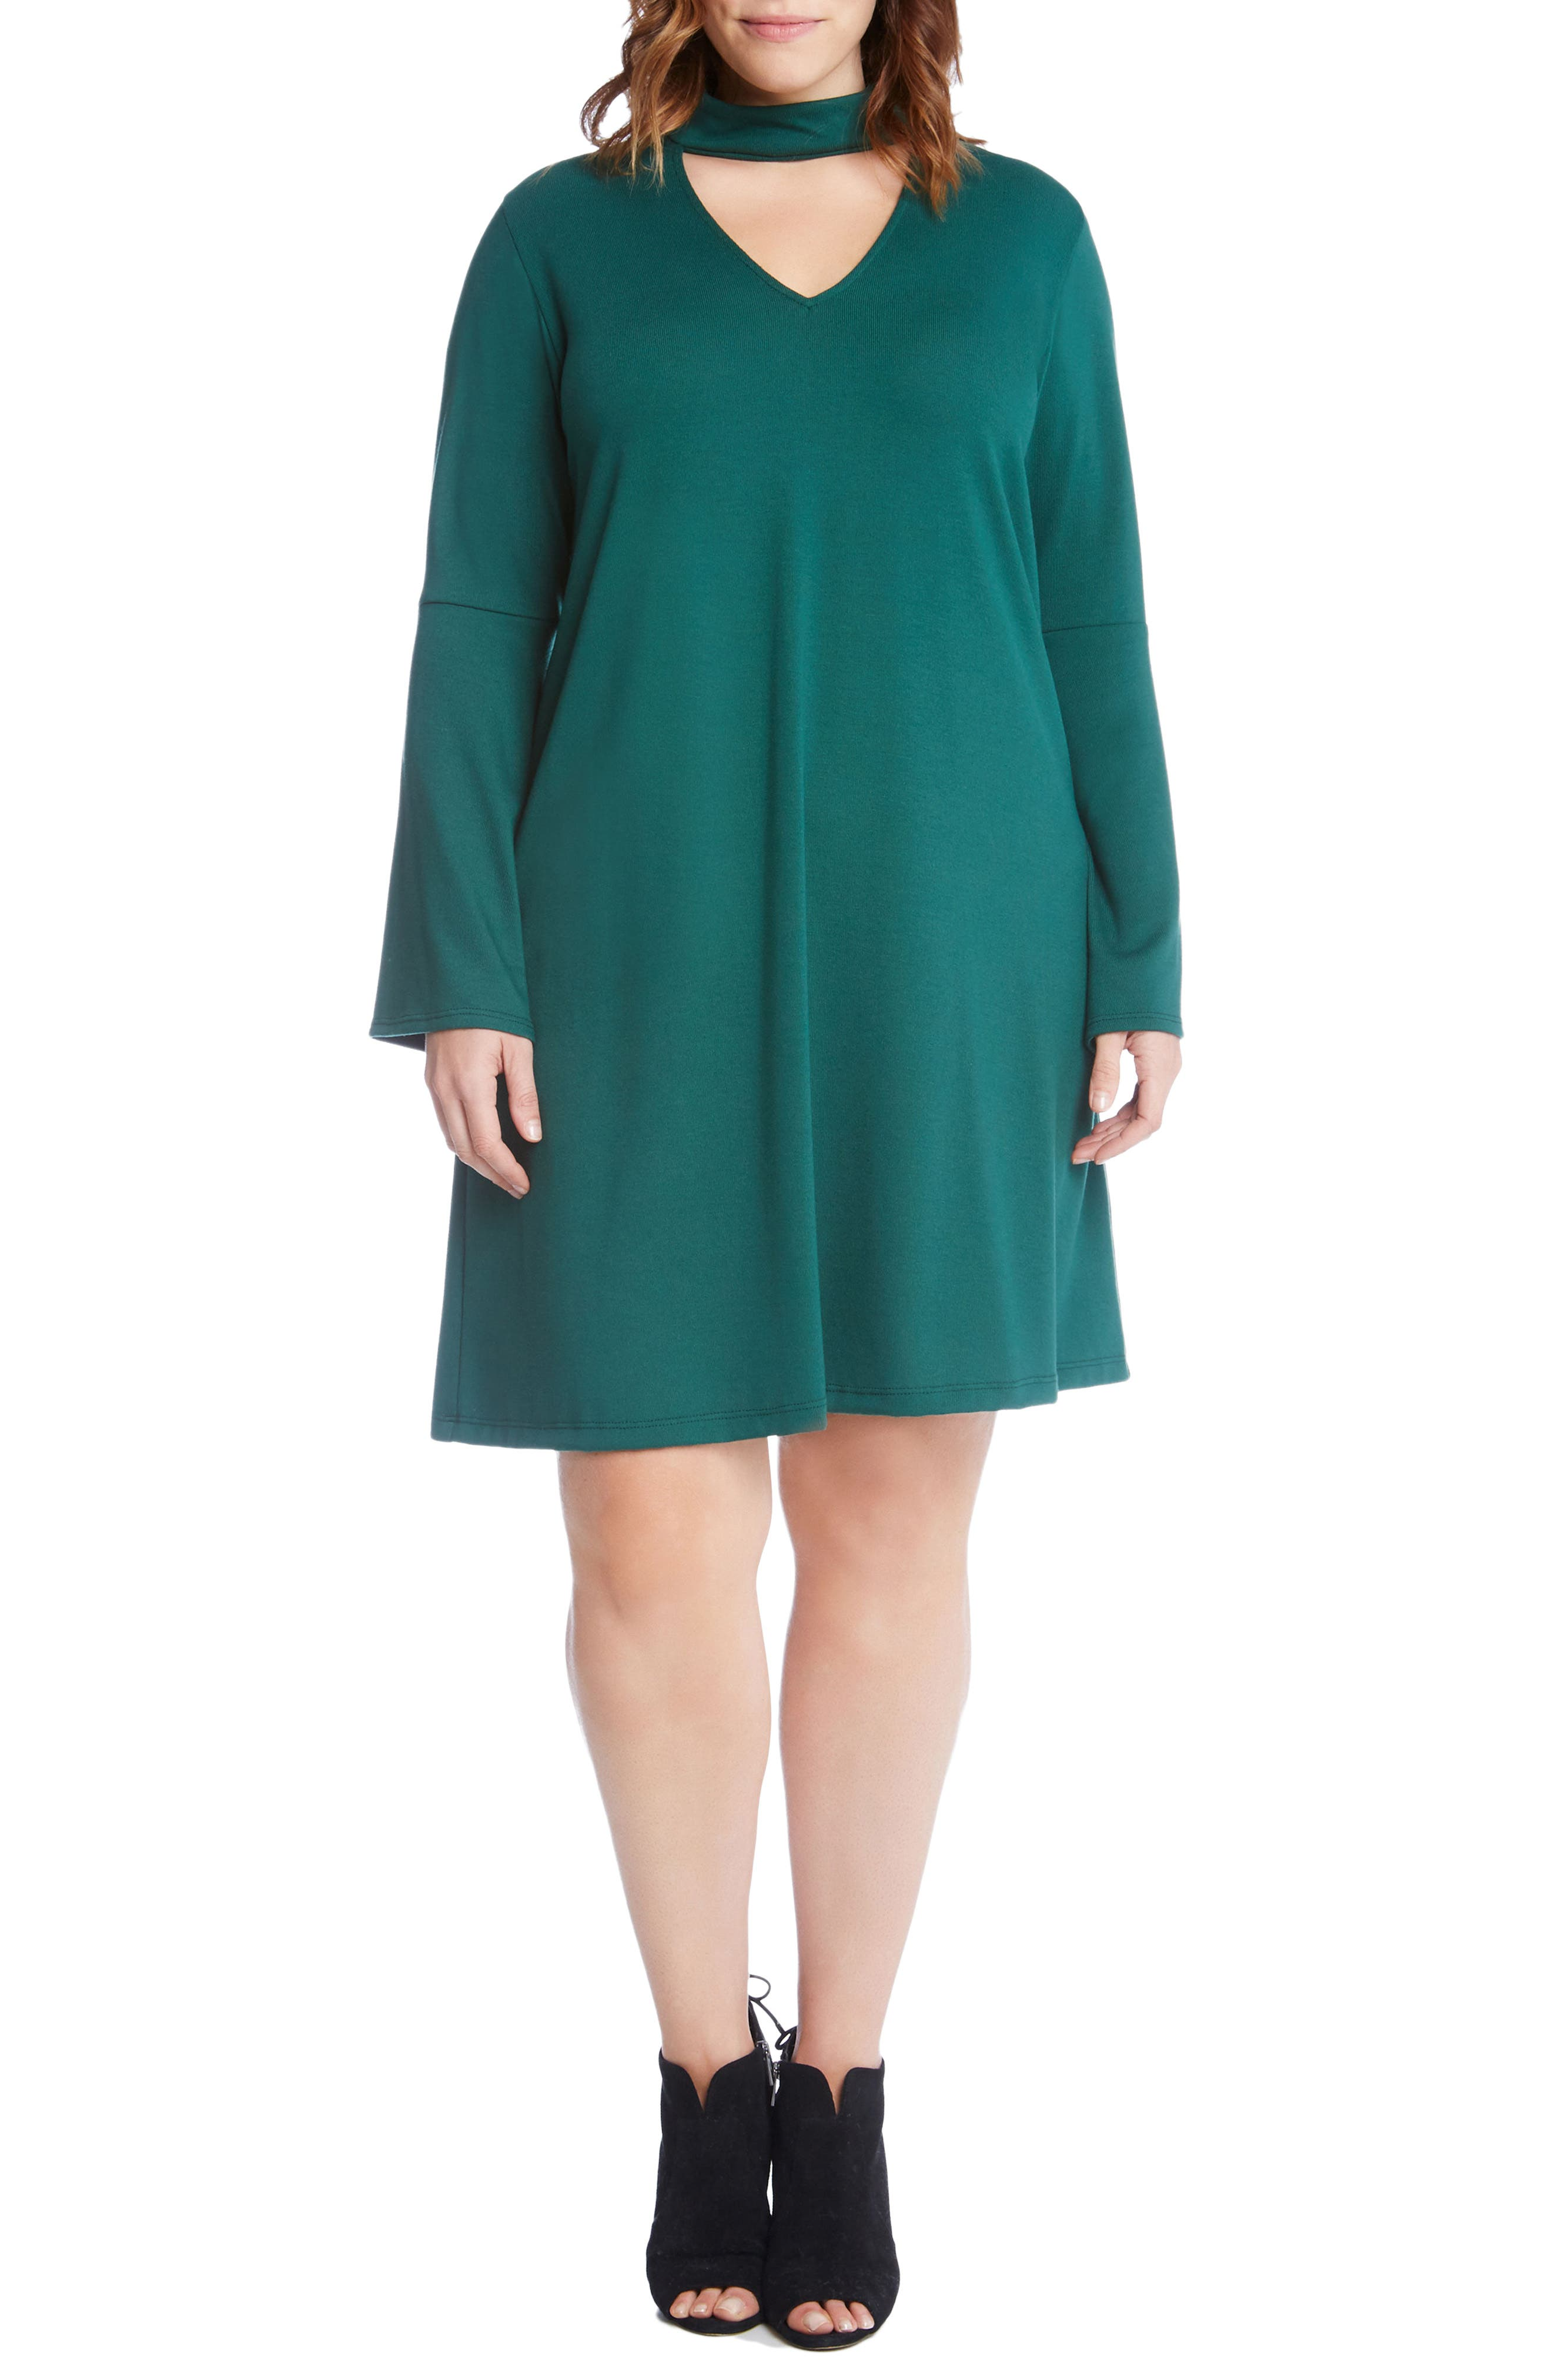 Taylor Choker Neck A-Line Dress,                         Main,                         color, Green